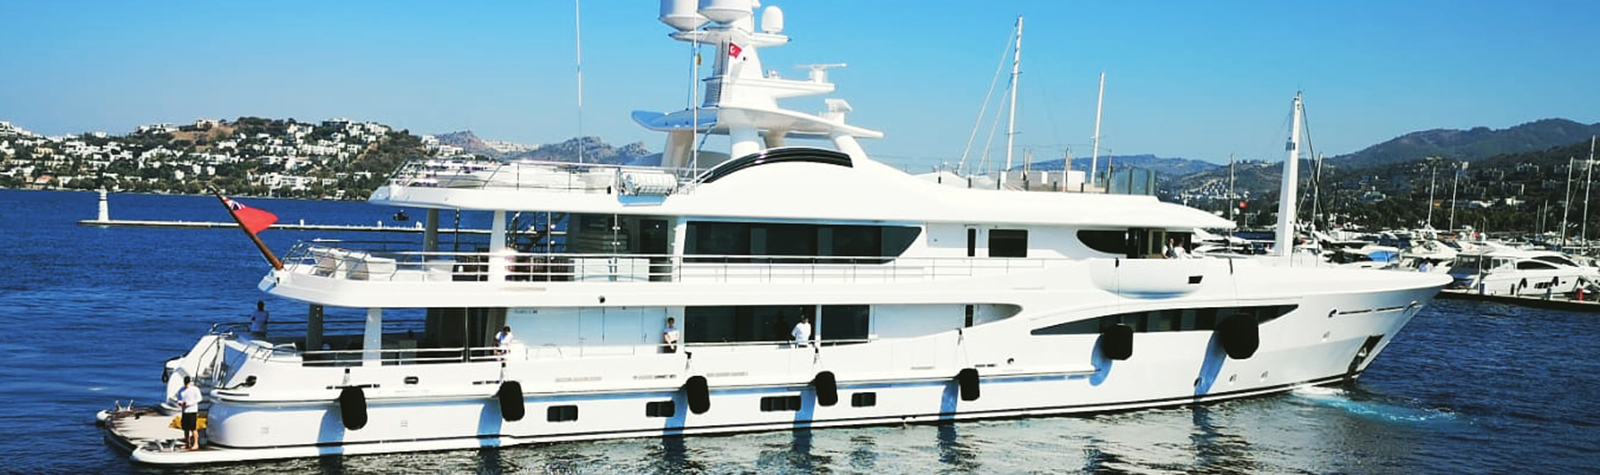 Faboulous M/Y EJI visited Bodrum